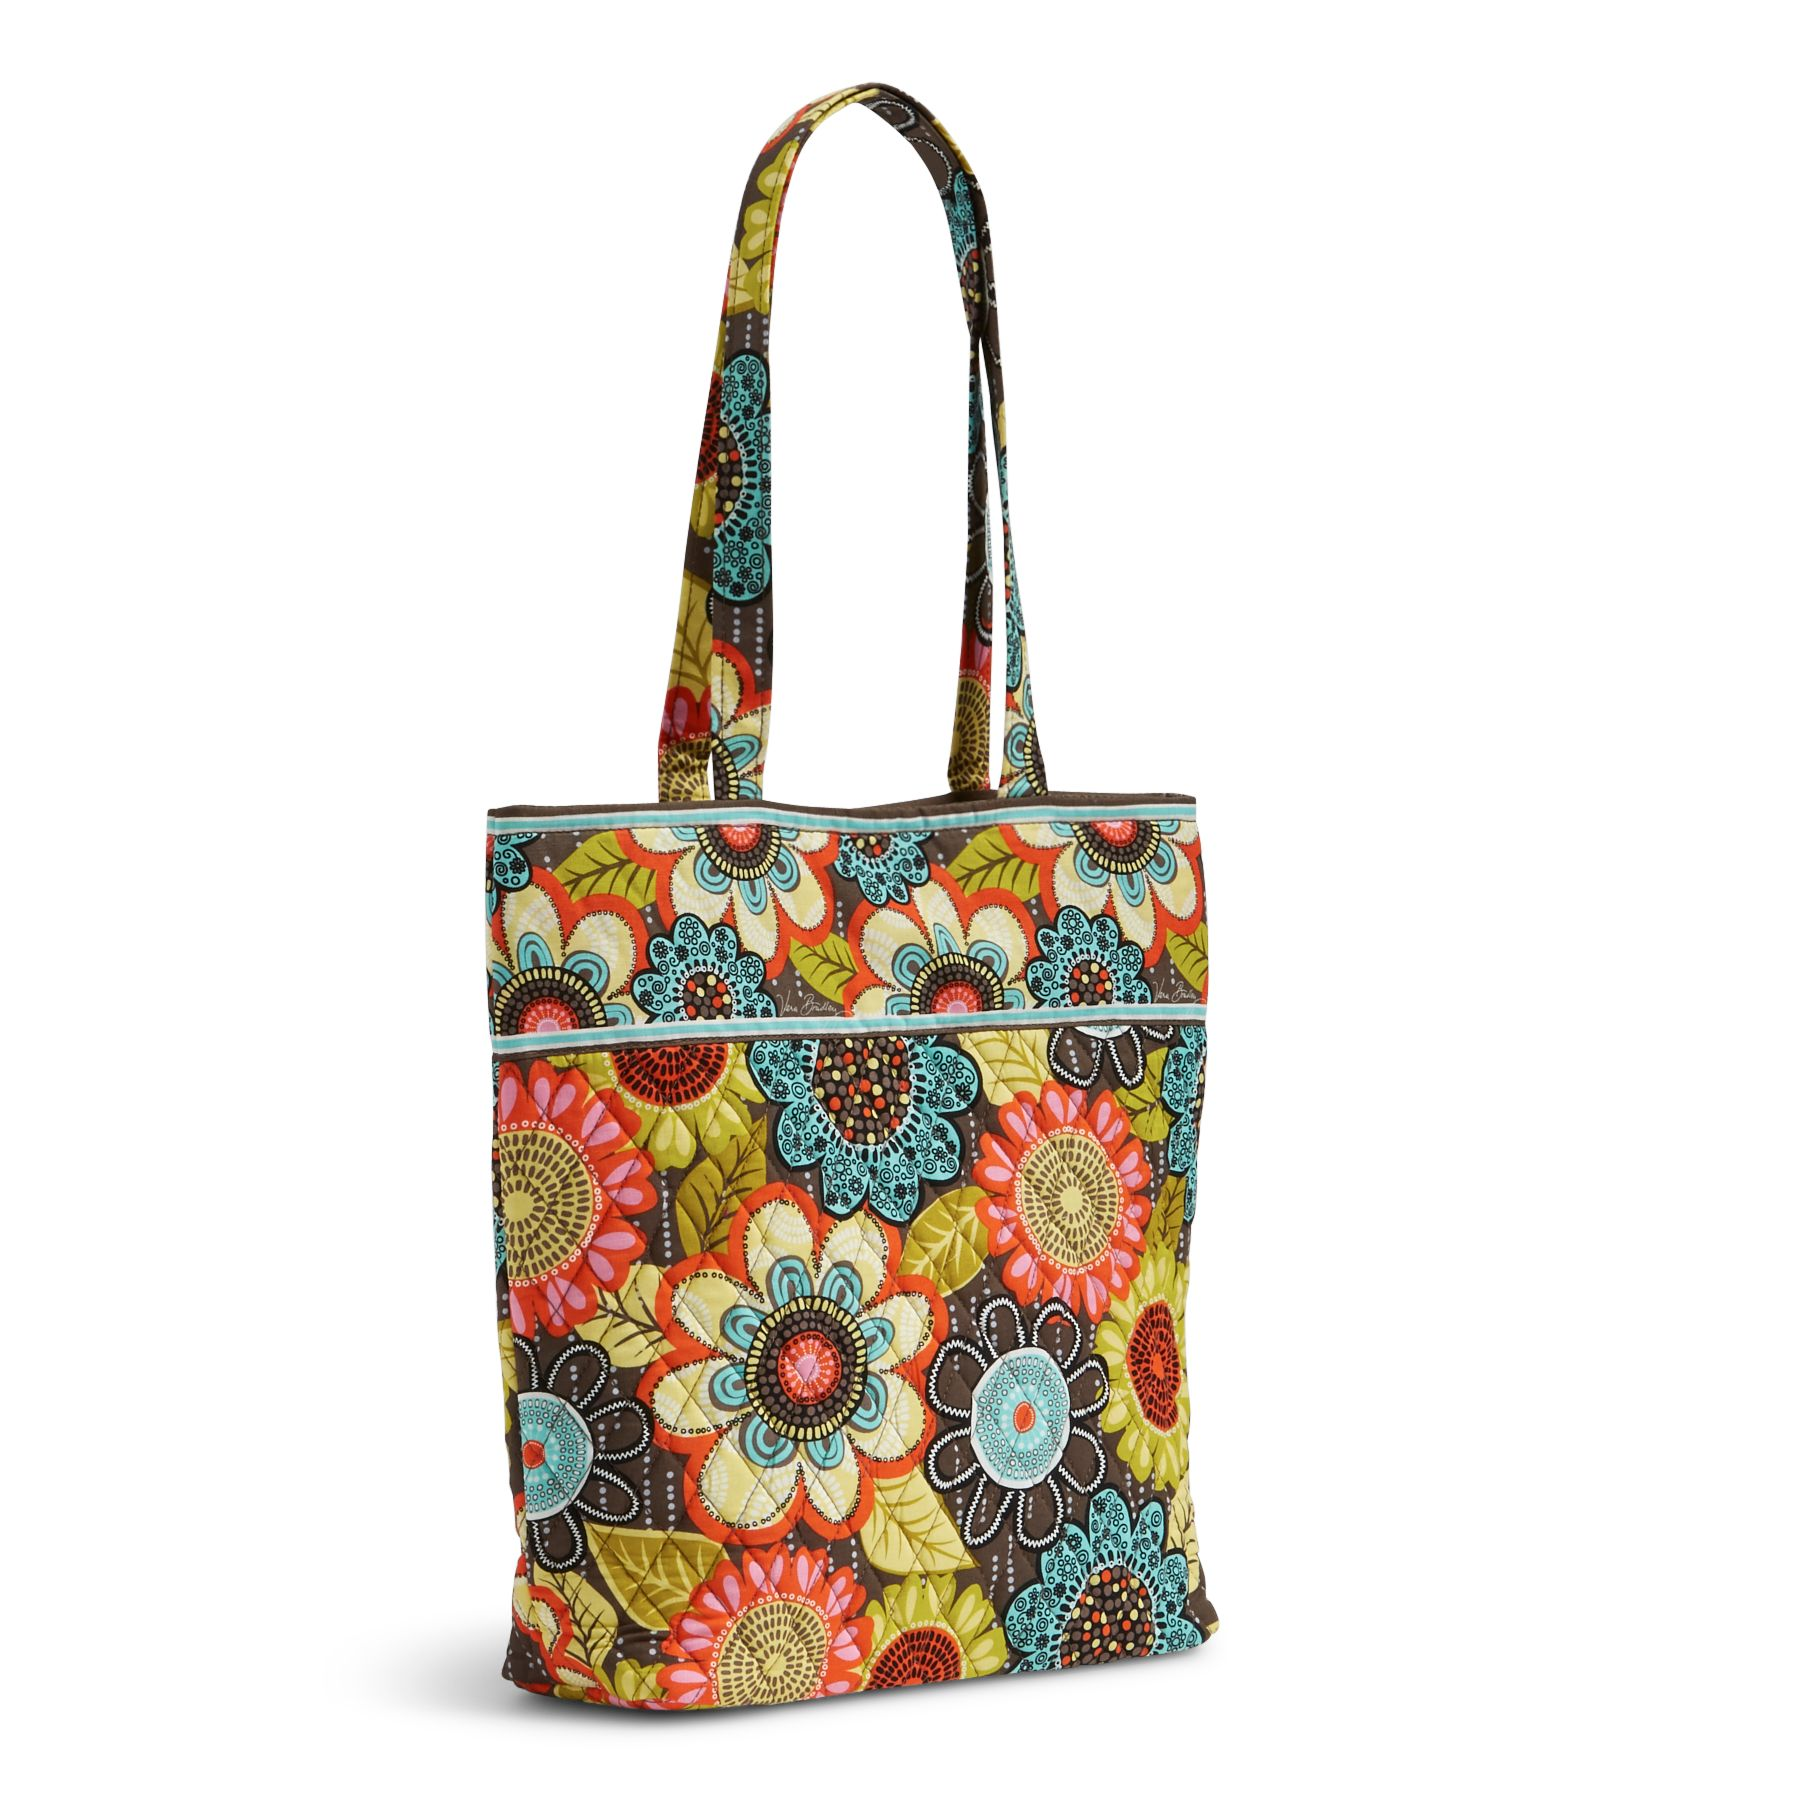 Find new and preloved Vera Bradley items at up to 70% off retail avatar-base.ml Protect· Fashion at 70% off· day priority shippingBrands: Kids' Brands, Men's Brands, People Also Searched, Women's Brands and more.